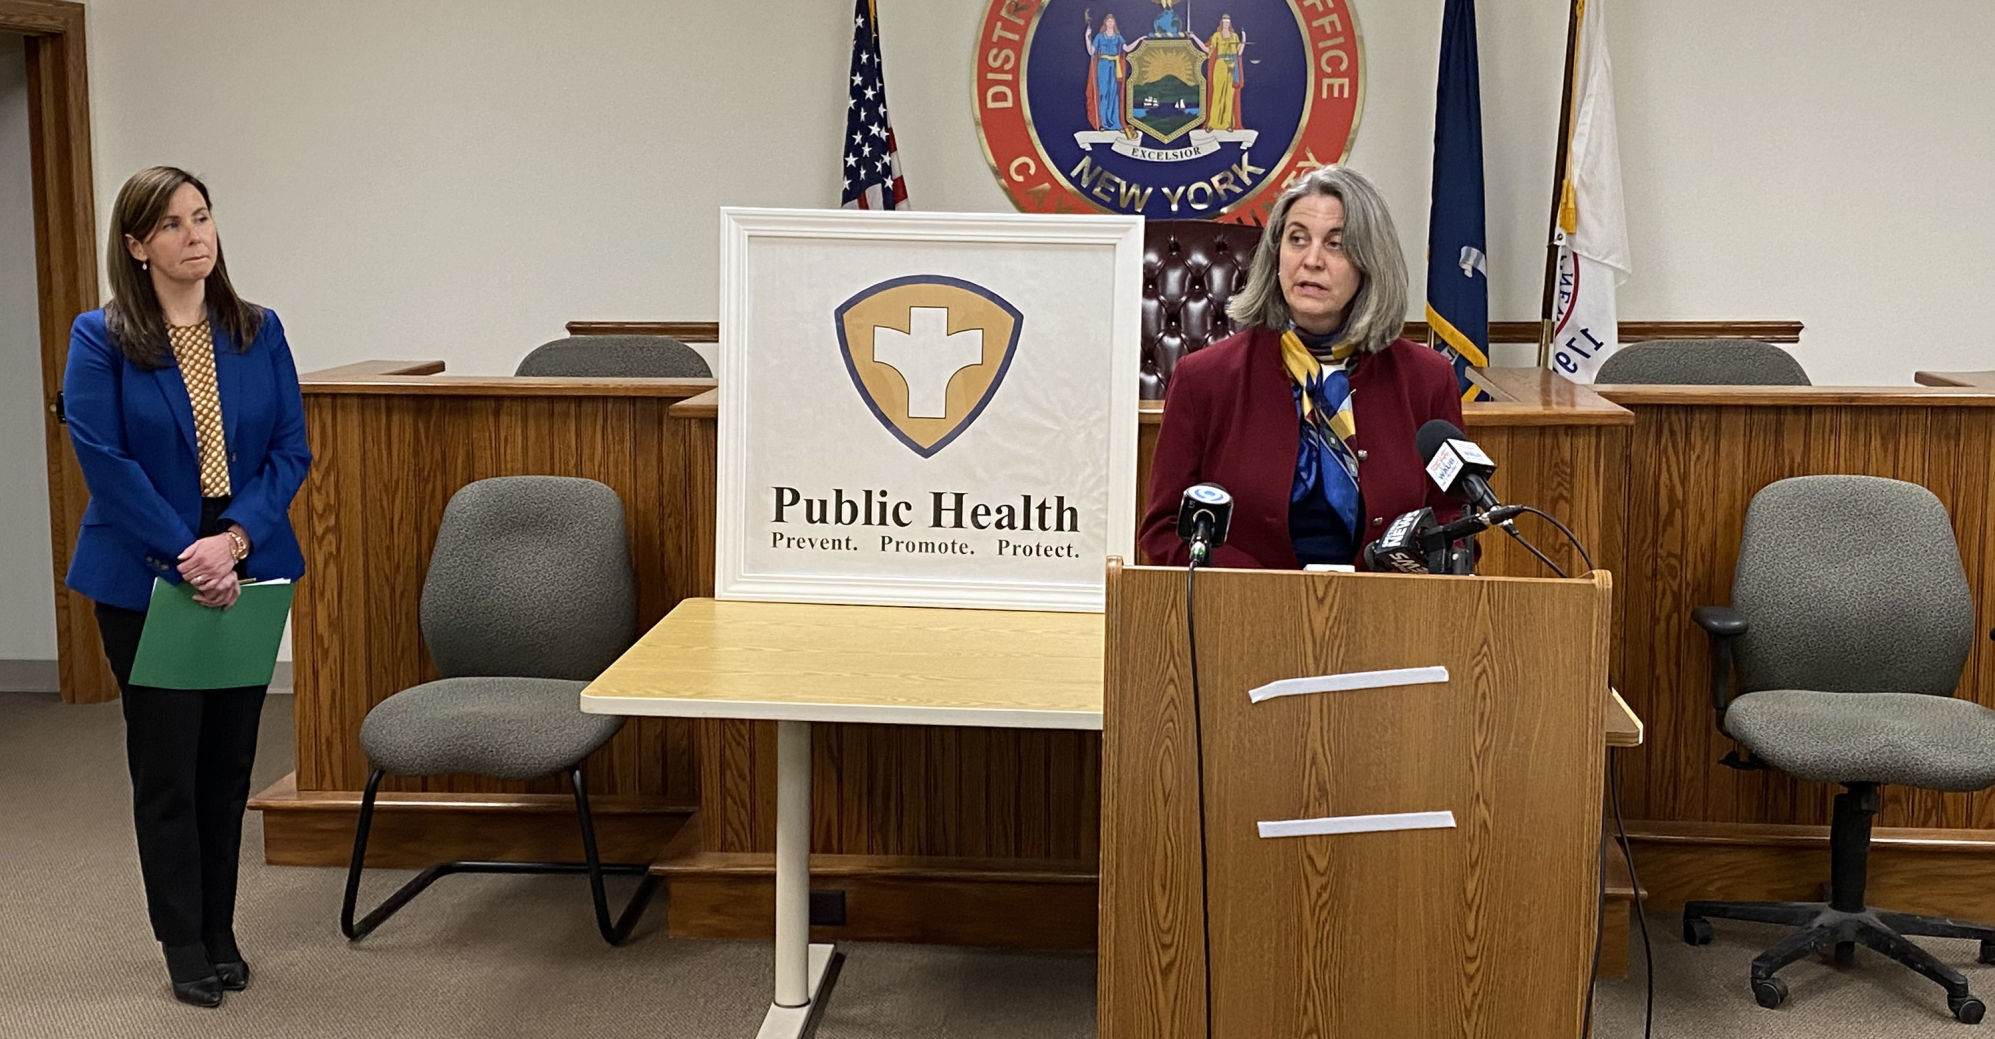 Two More Confirmed Coronavirus Cases In Cayuga County